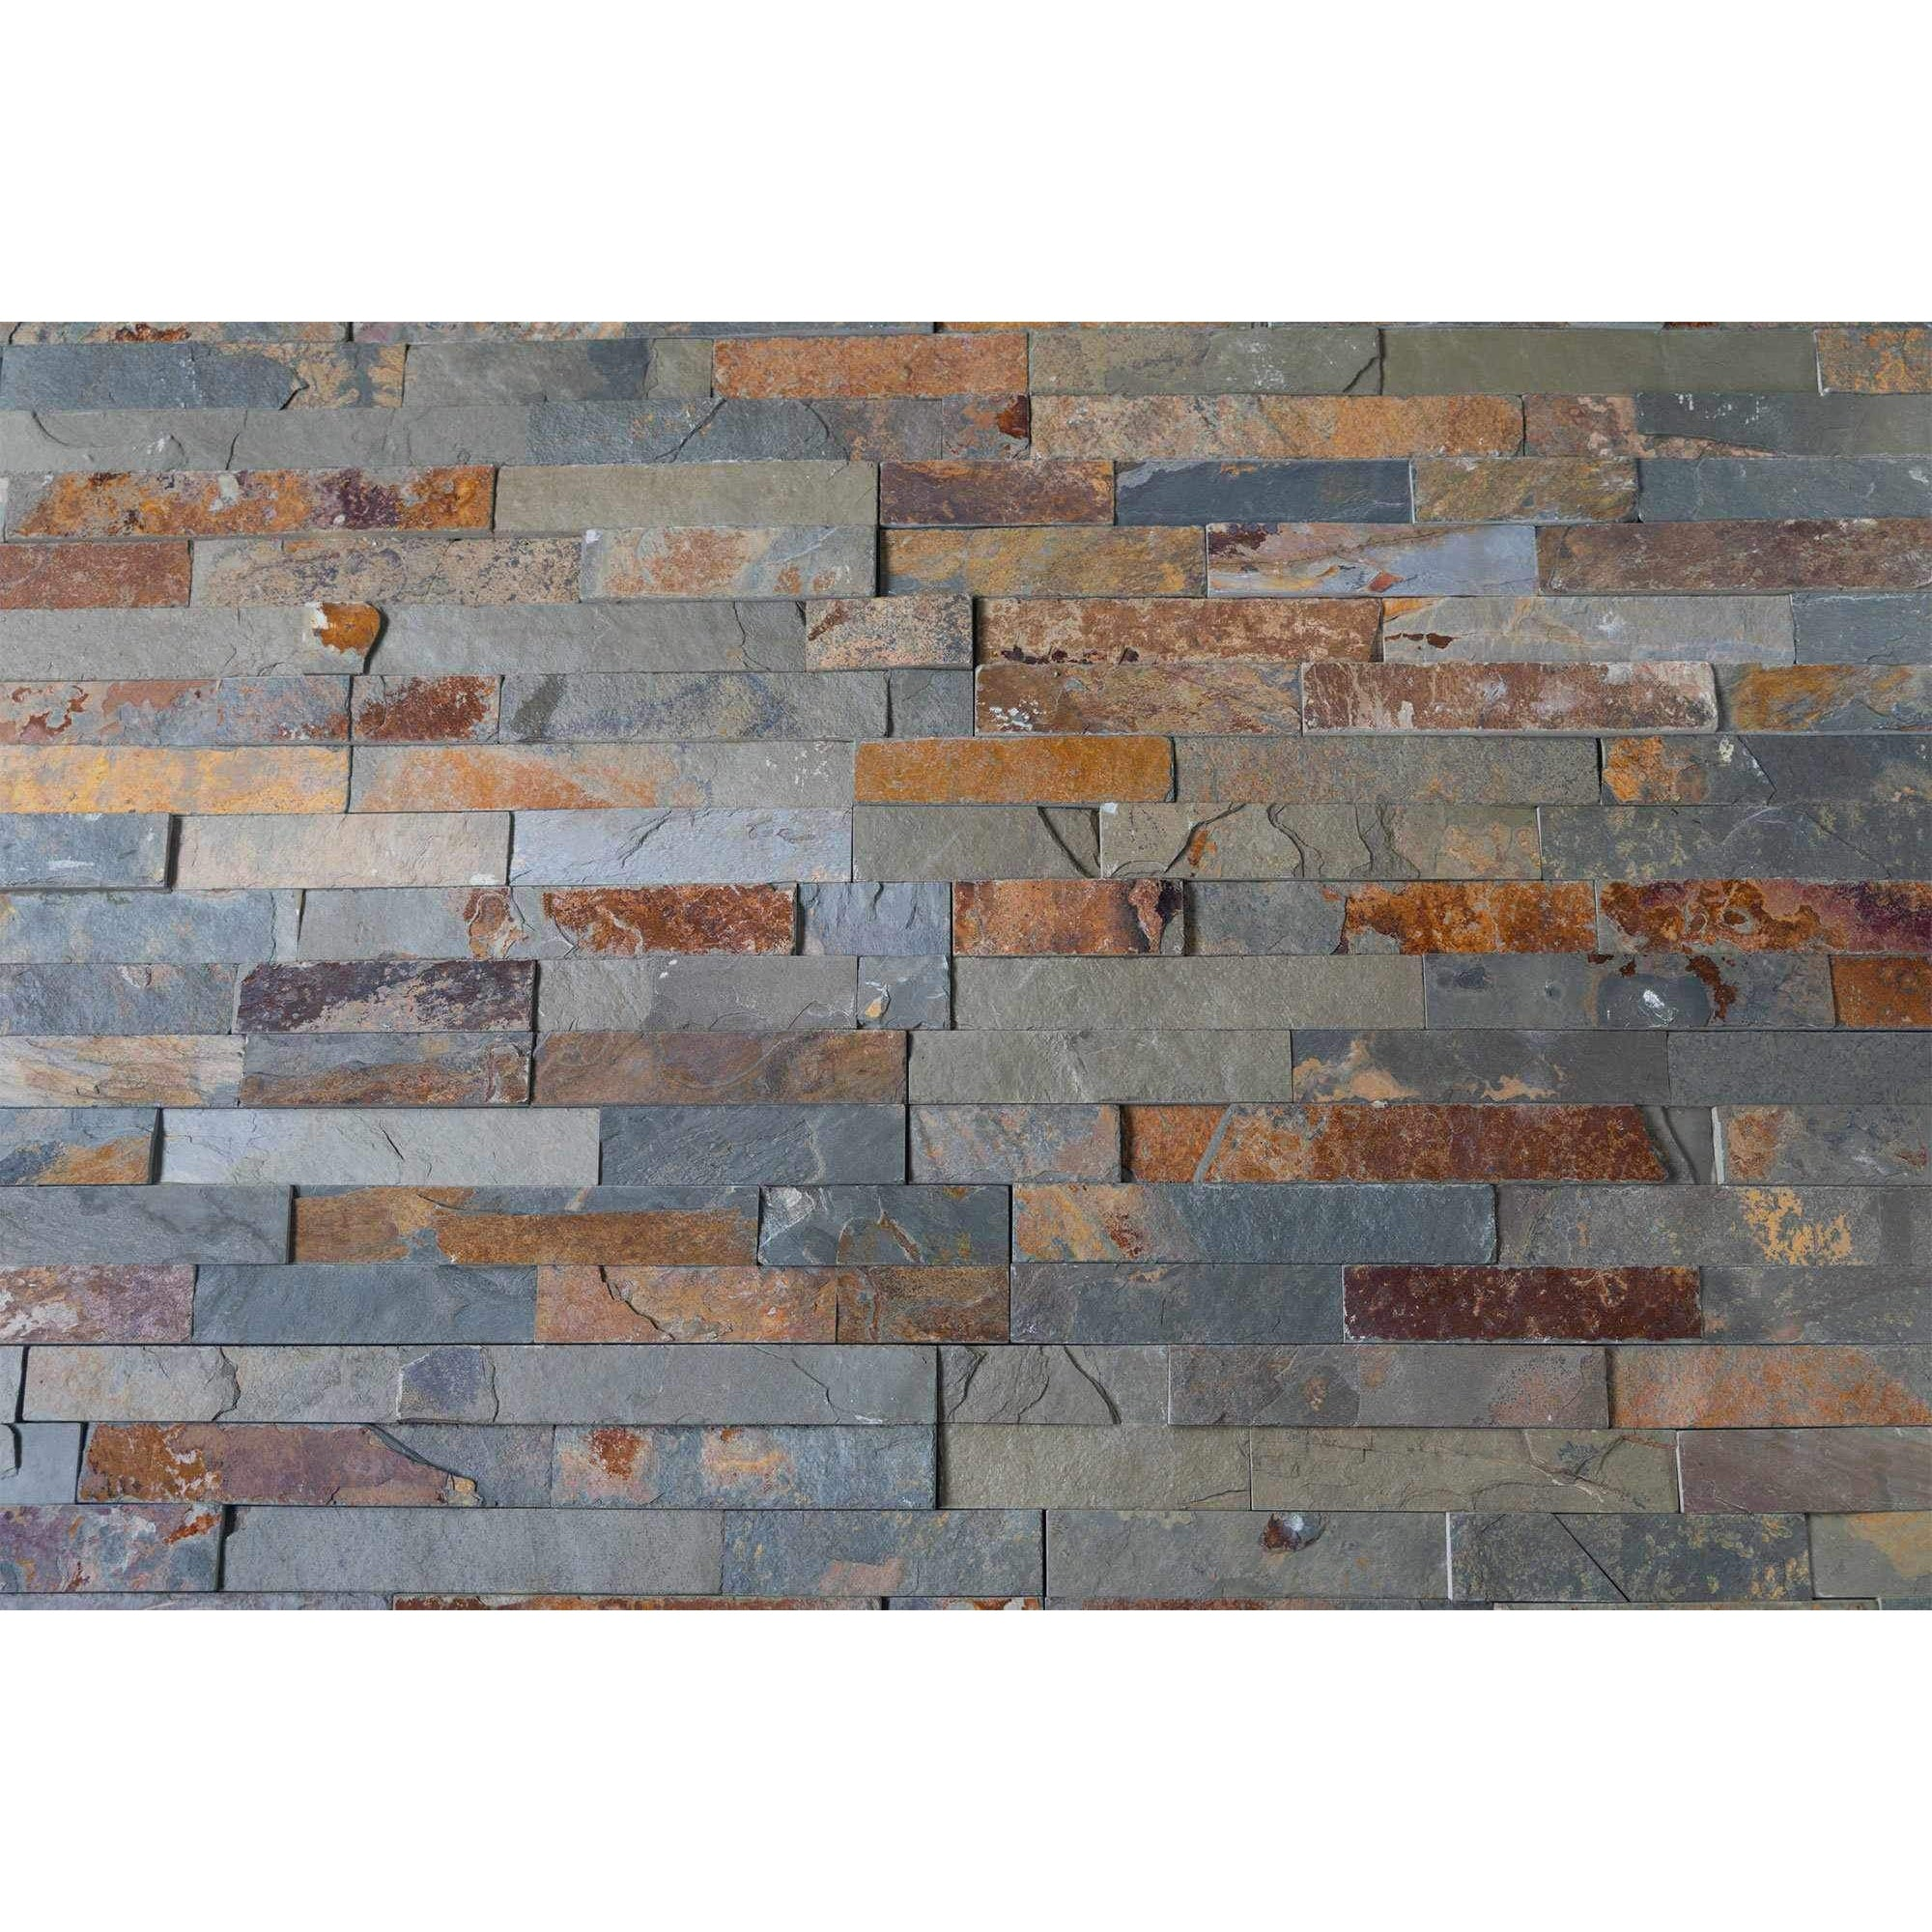 Natural Stacked Stone Feature Wall Cladding Panels - Slate